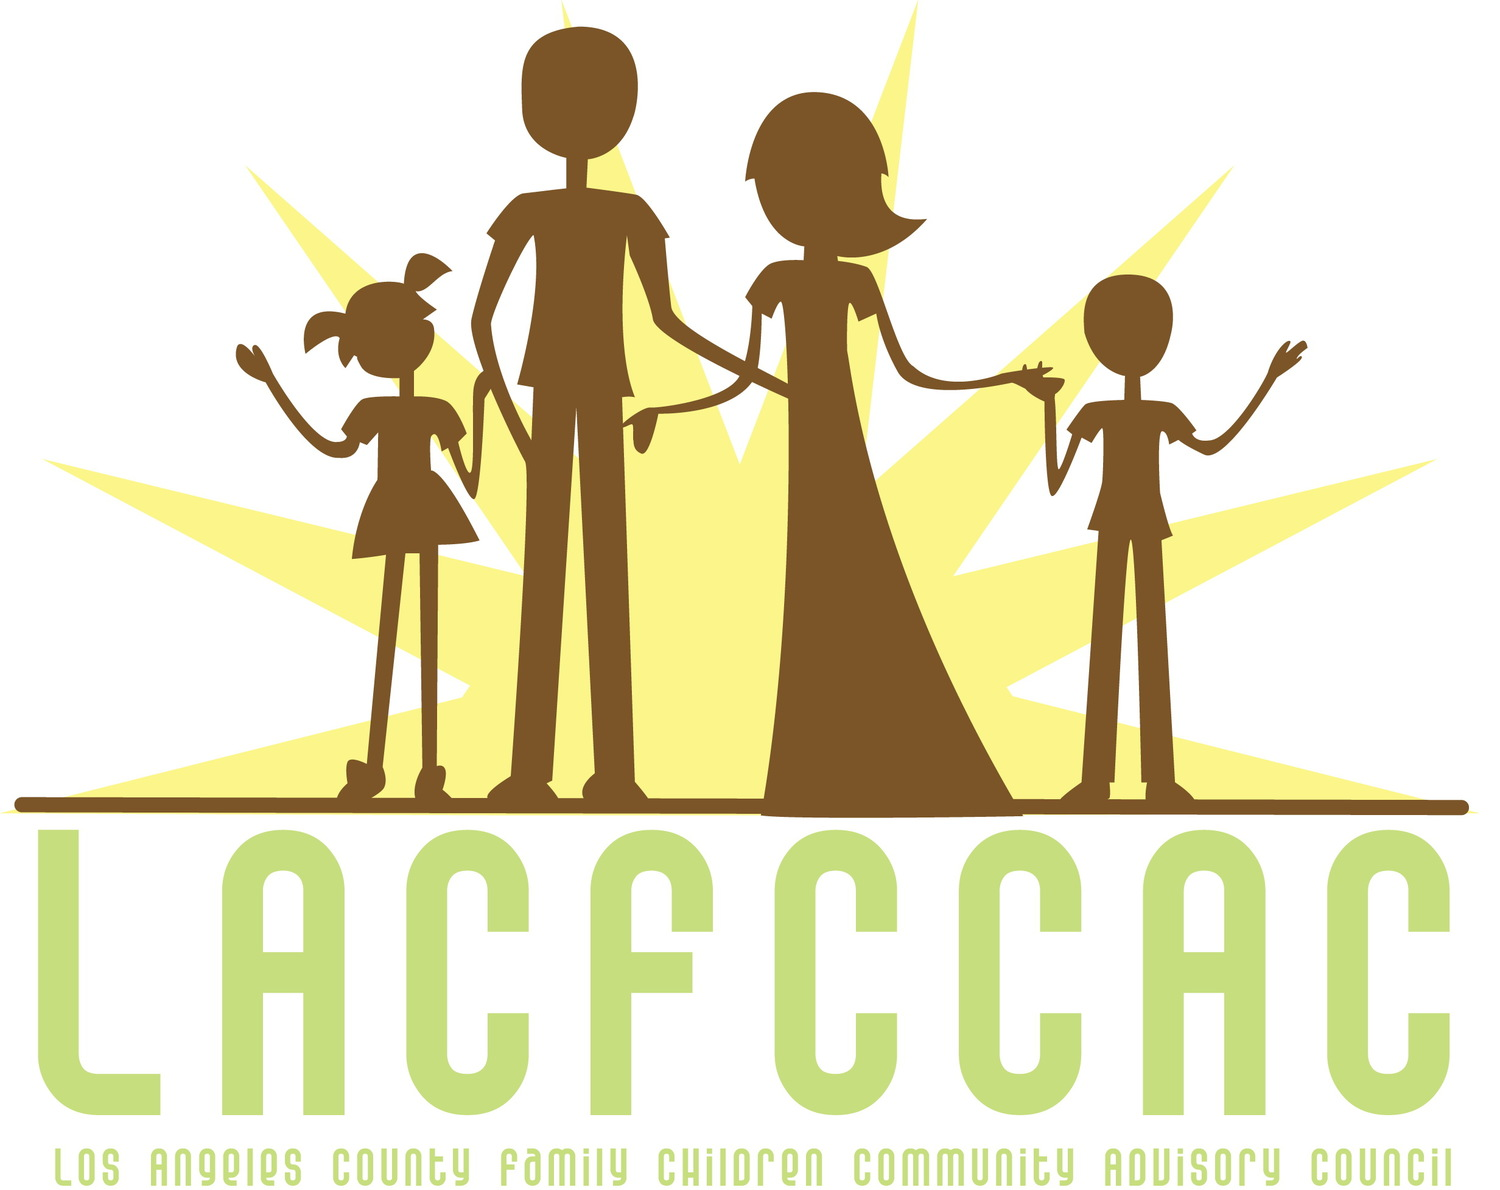 Los Angeles County Family Children Community Advisory Council